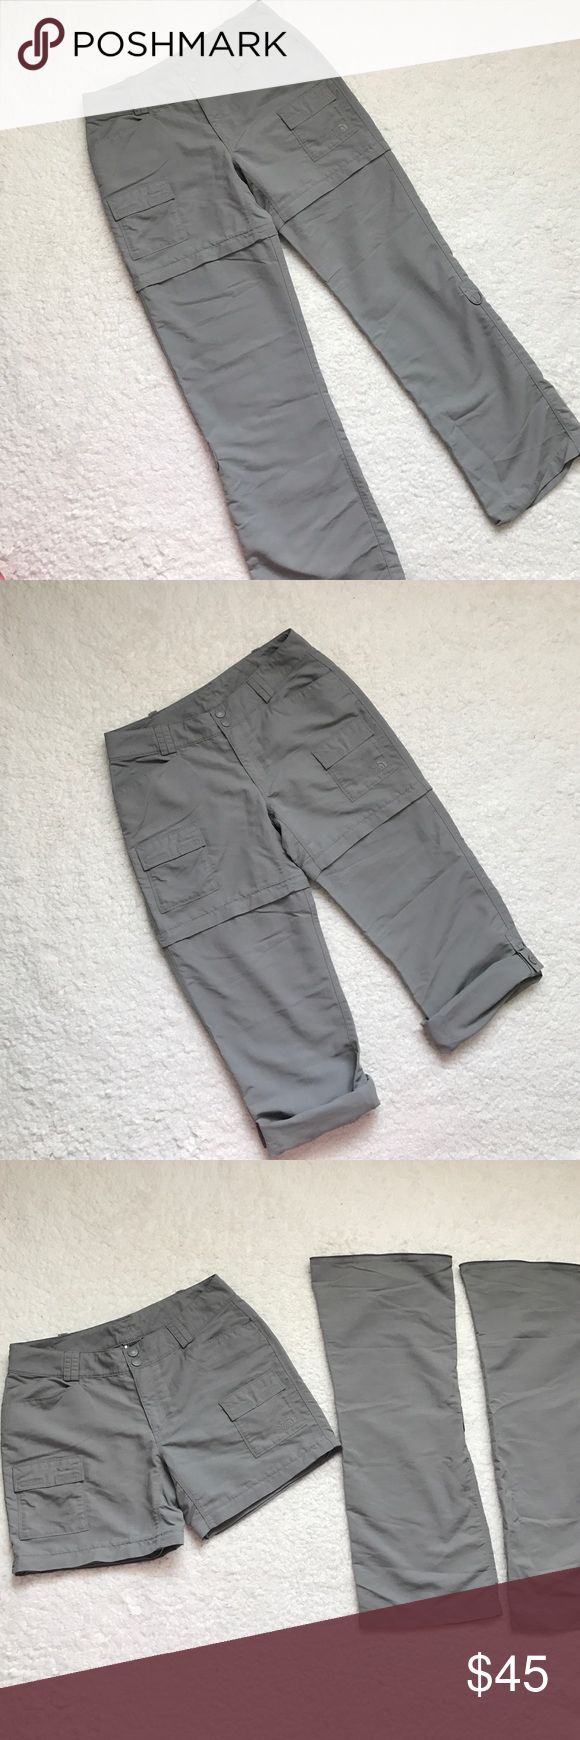 """The North Face Outdoor Convertible Pants These 3 in one pants are such great quality and in good shape.  There is a tiny pen mark on the front fly.  Snap button and drawstring waist.  Zip off legs turn to shorts or roll up button tab turns into capris.  100% Nylon.  Measurements laying flat are approximately: Waist 15"""".  Rise 8.5"""".  Pant inseam 31"""".  Short inseam 5.5"""". The North Face Pants"""